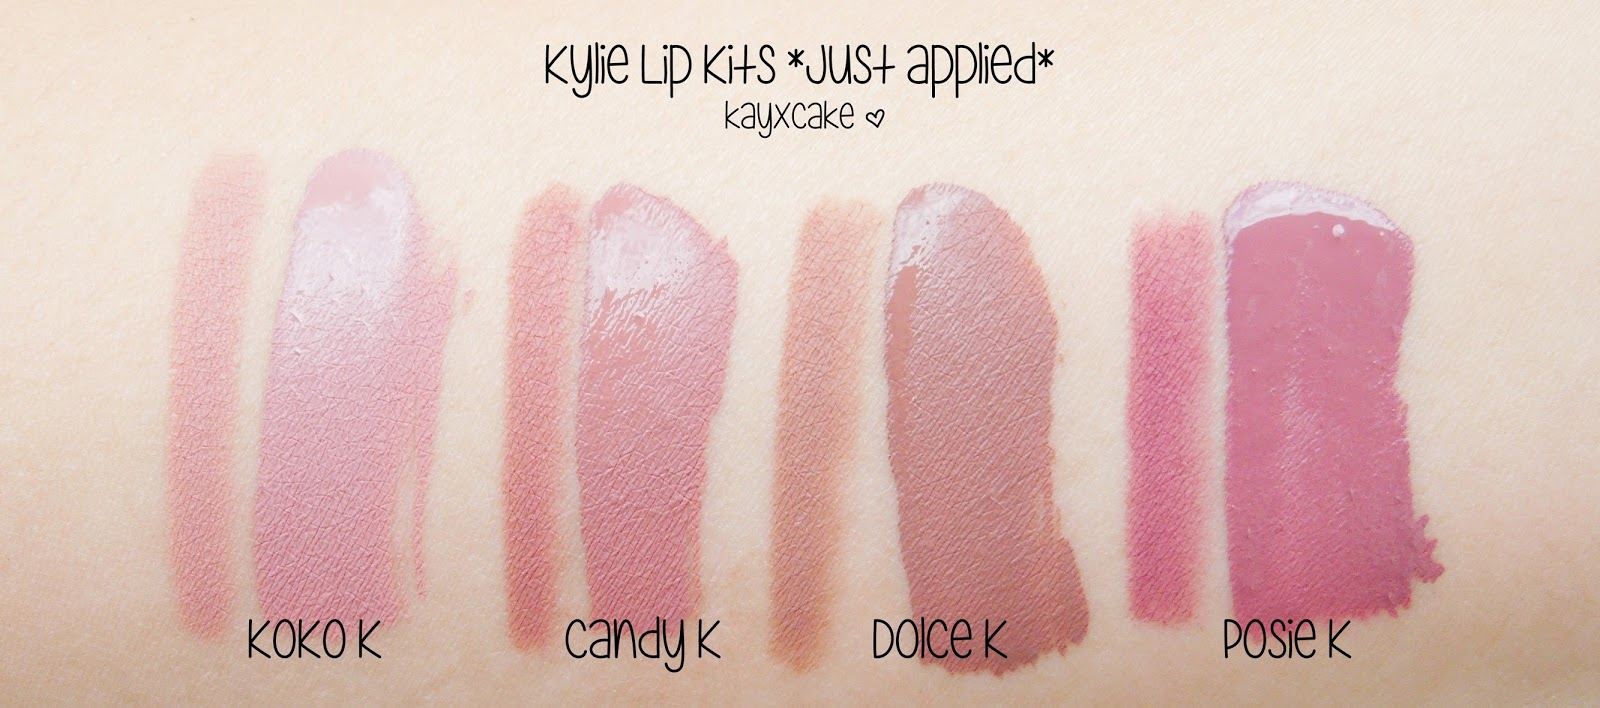 Gloss by Kylie Cosmetics #15